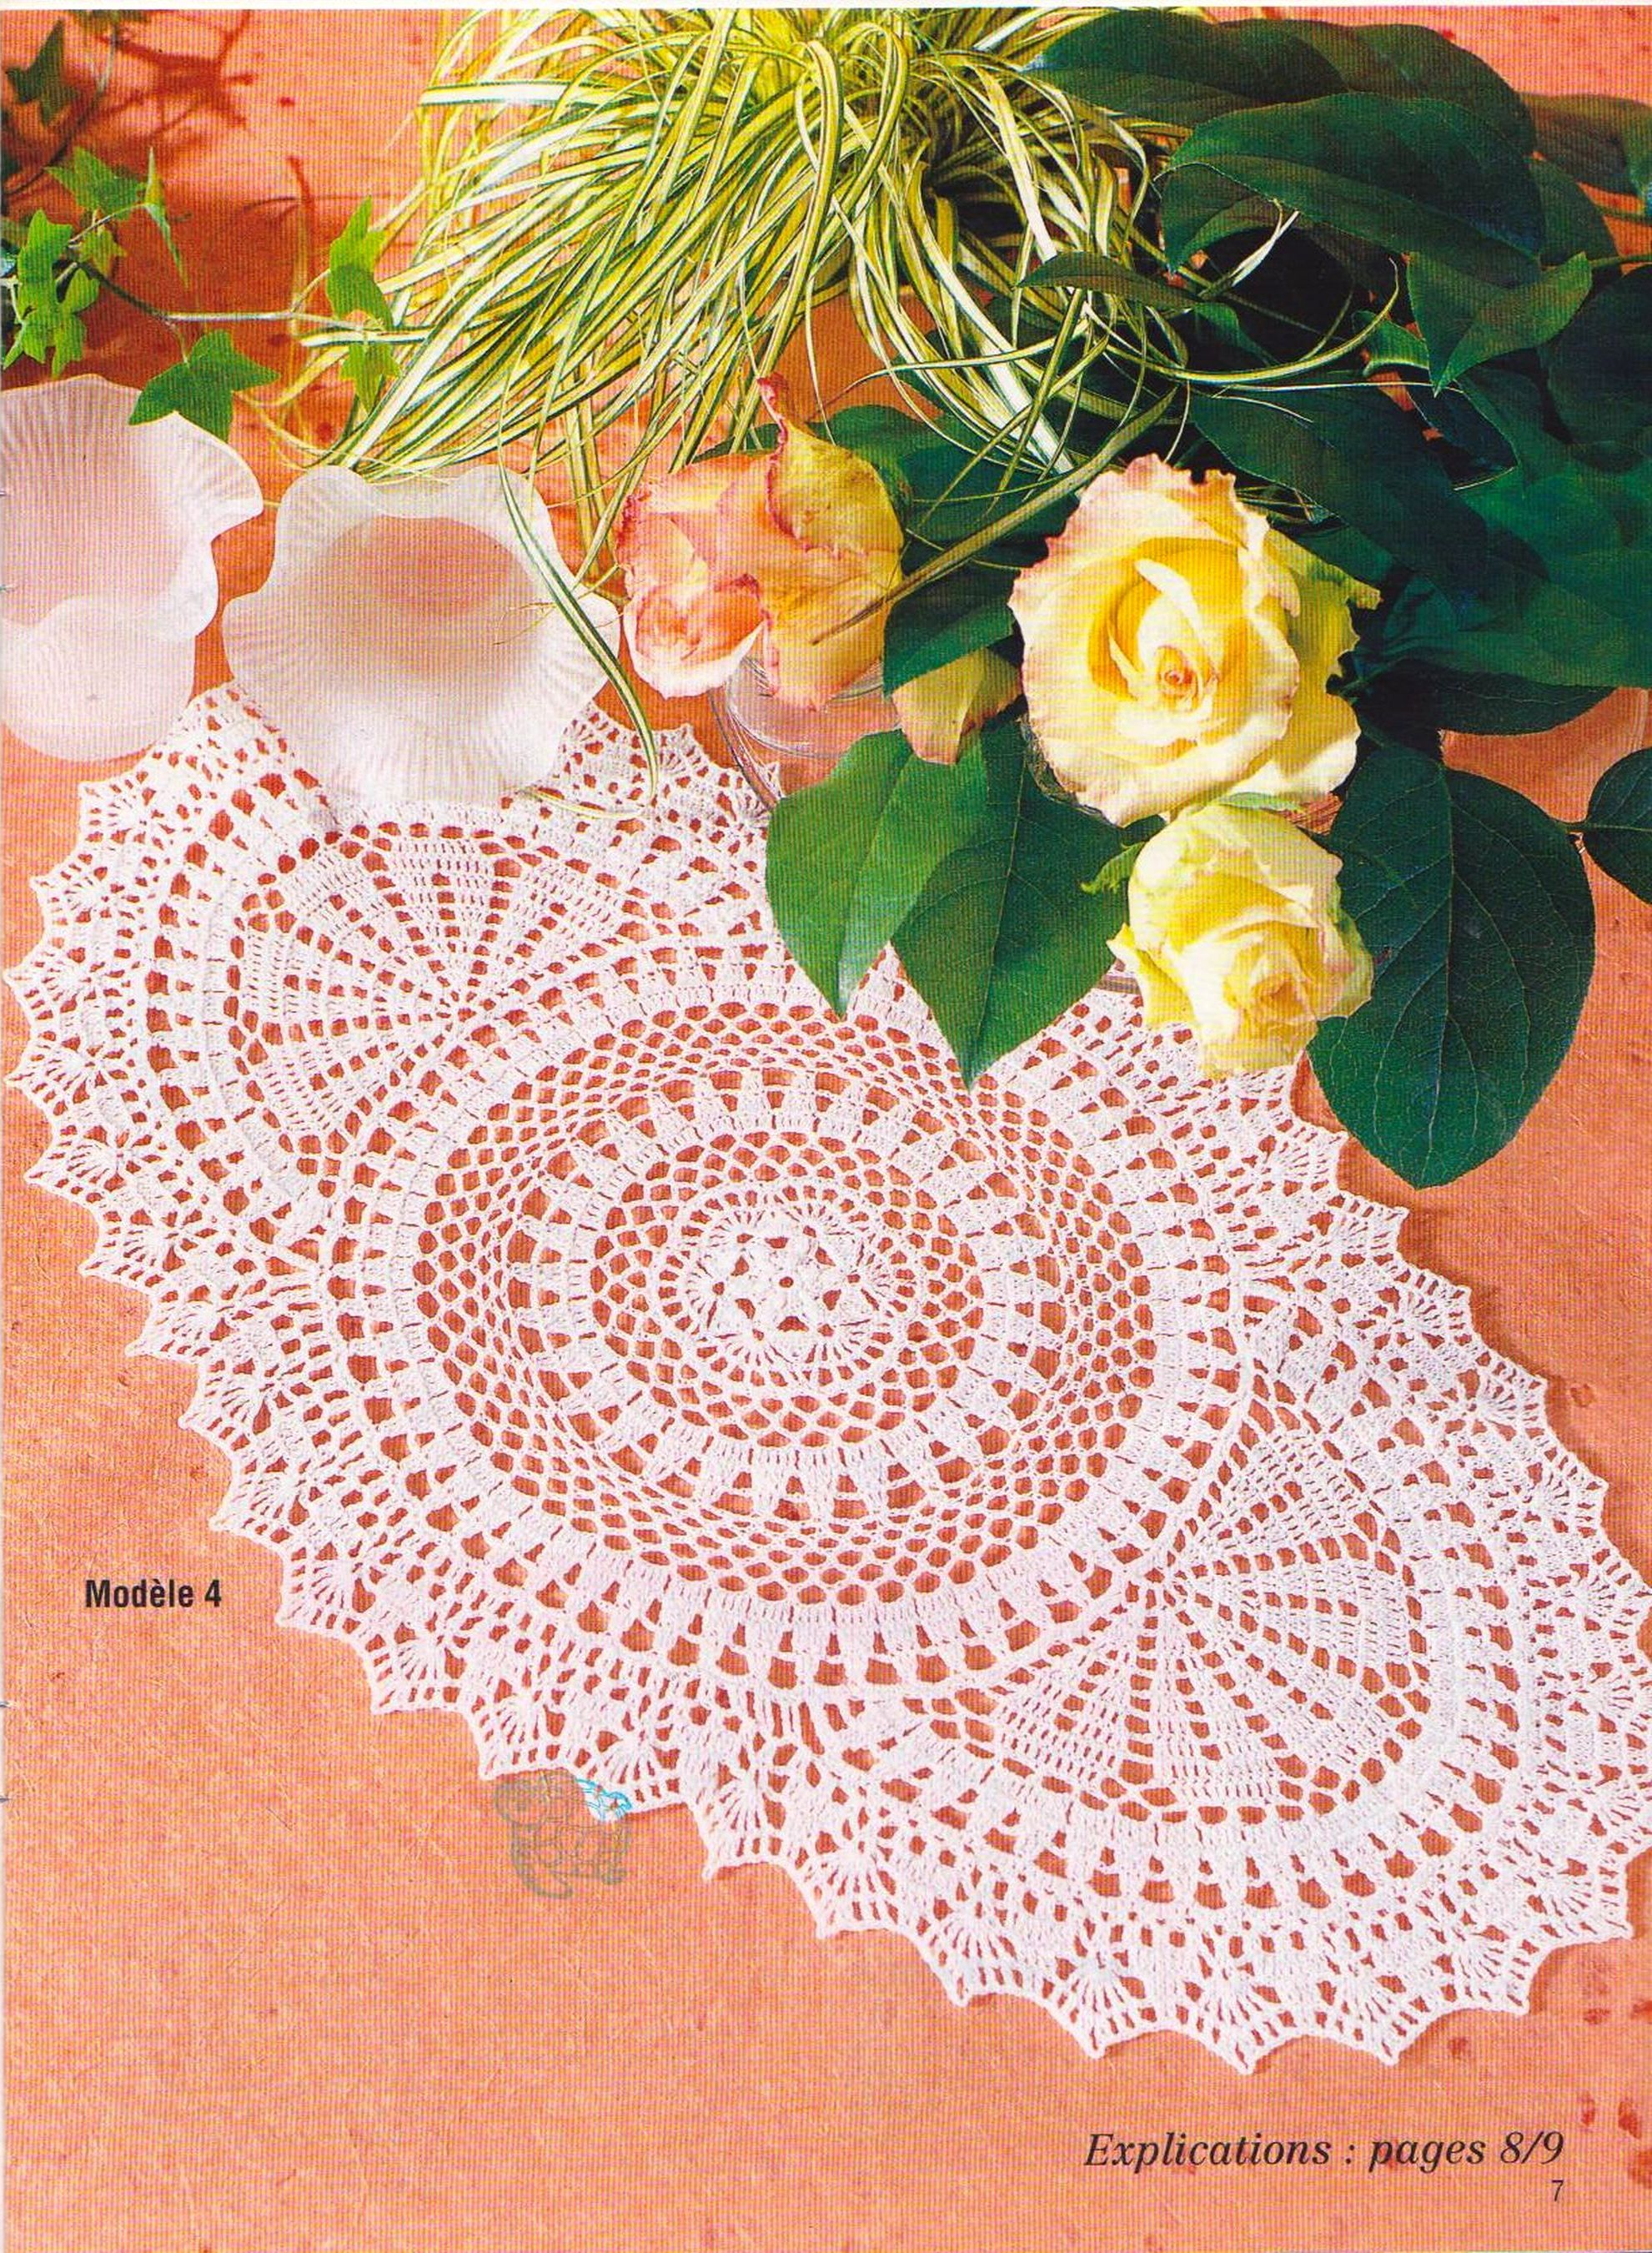 Circle Oval Crochet Doily Pattern ⋆ Crochet Kingdom